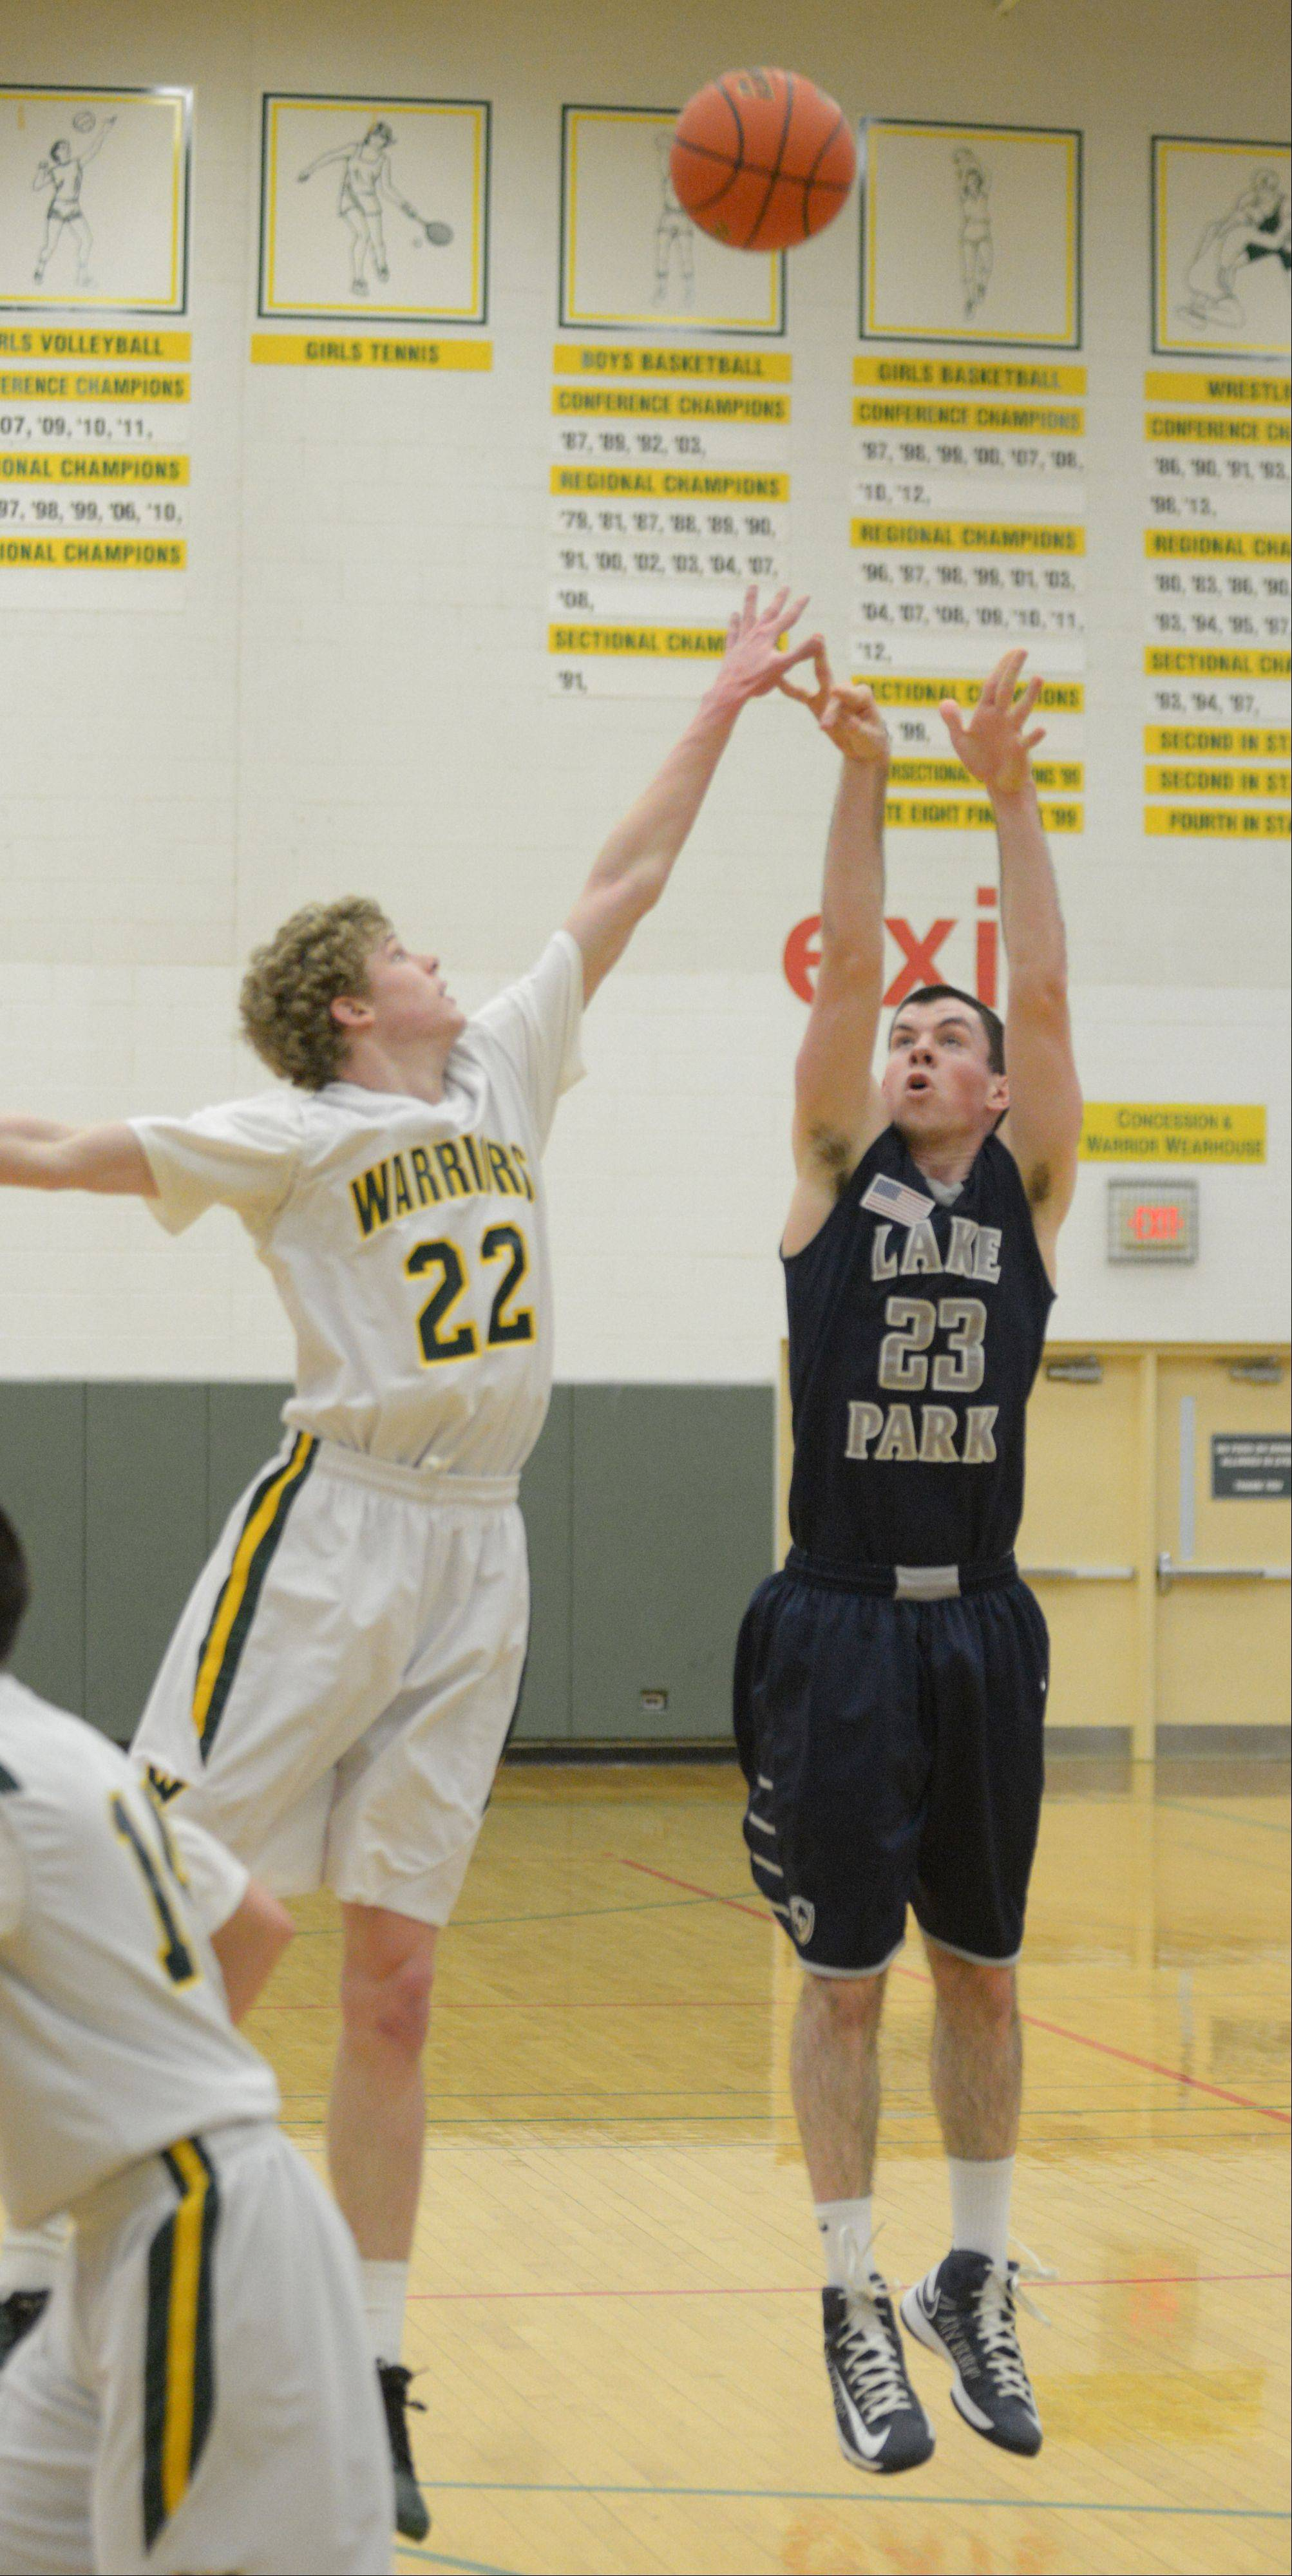 Jack Cordes of Waubonsie,left, attempts to block a shot by Sean Moore of Lake Park during the Lake Park at Waubonsie Valley boys basketball game Friday.